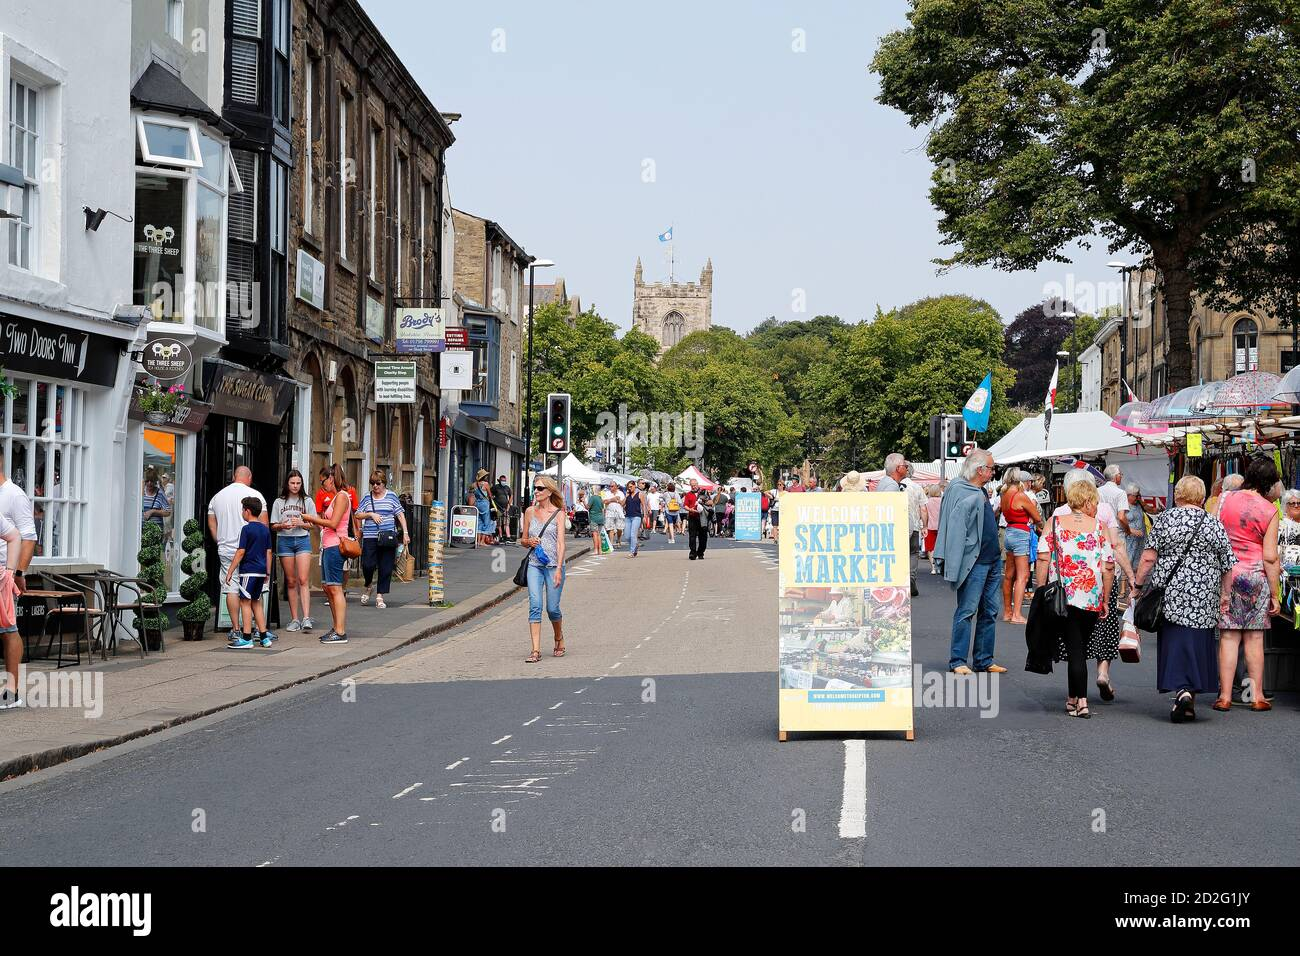 Skipton market with very few shoppers due to the Covid 19 Pandemic. 12-09-2020 Stock Photo